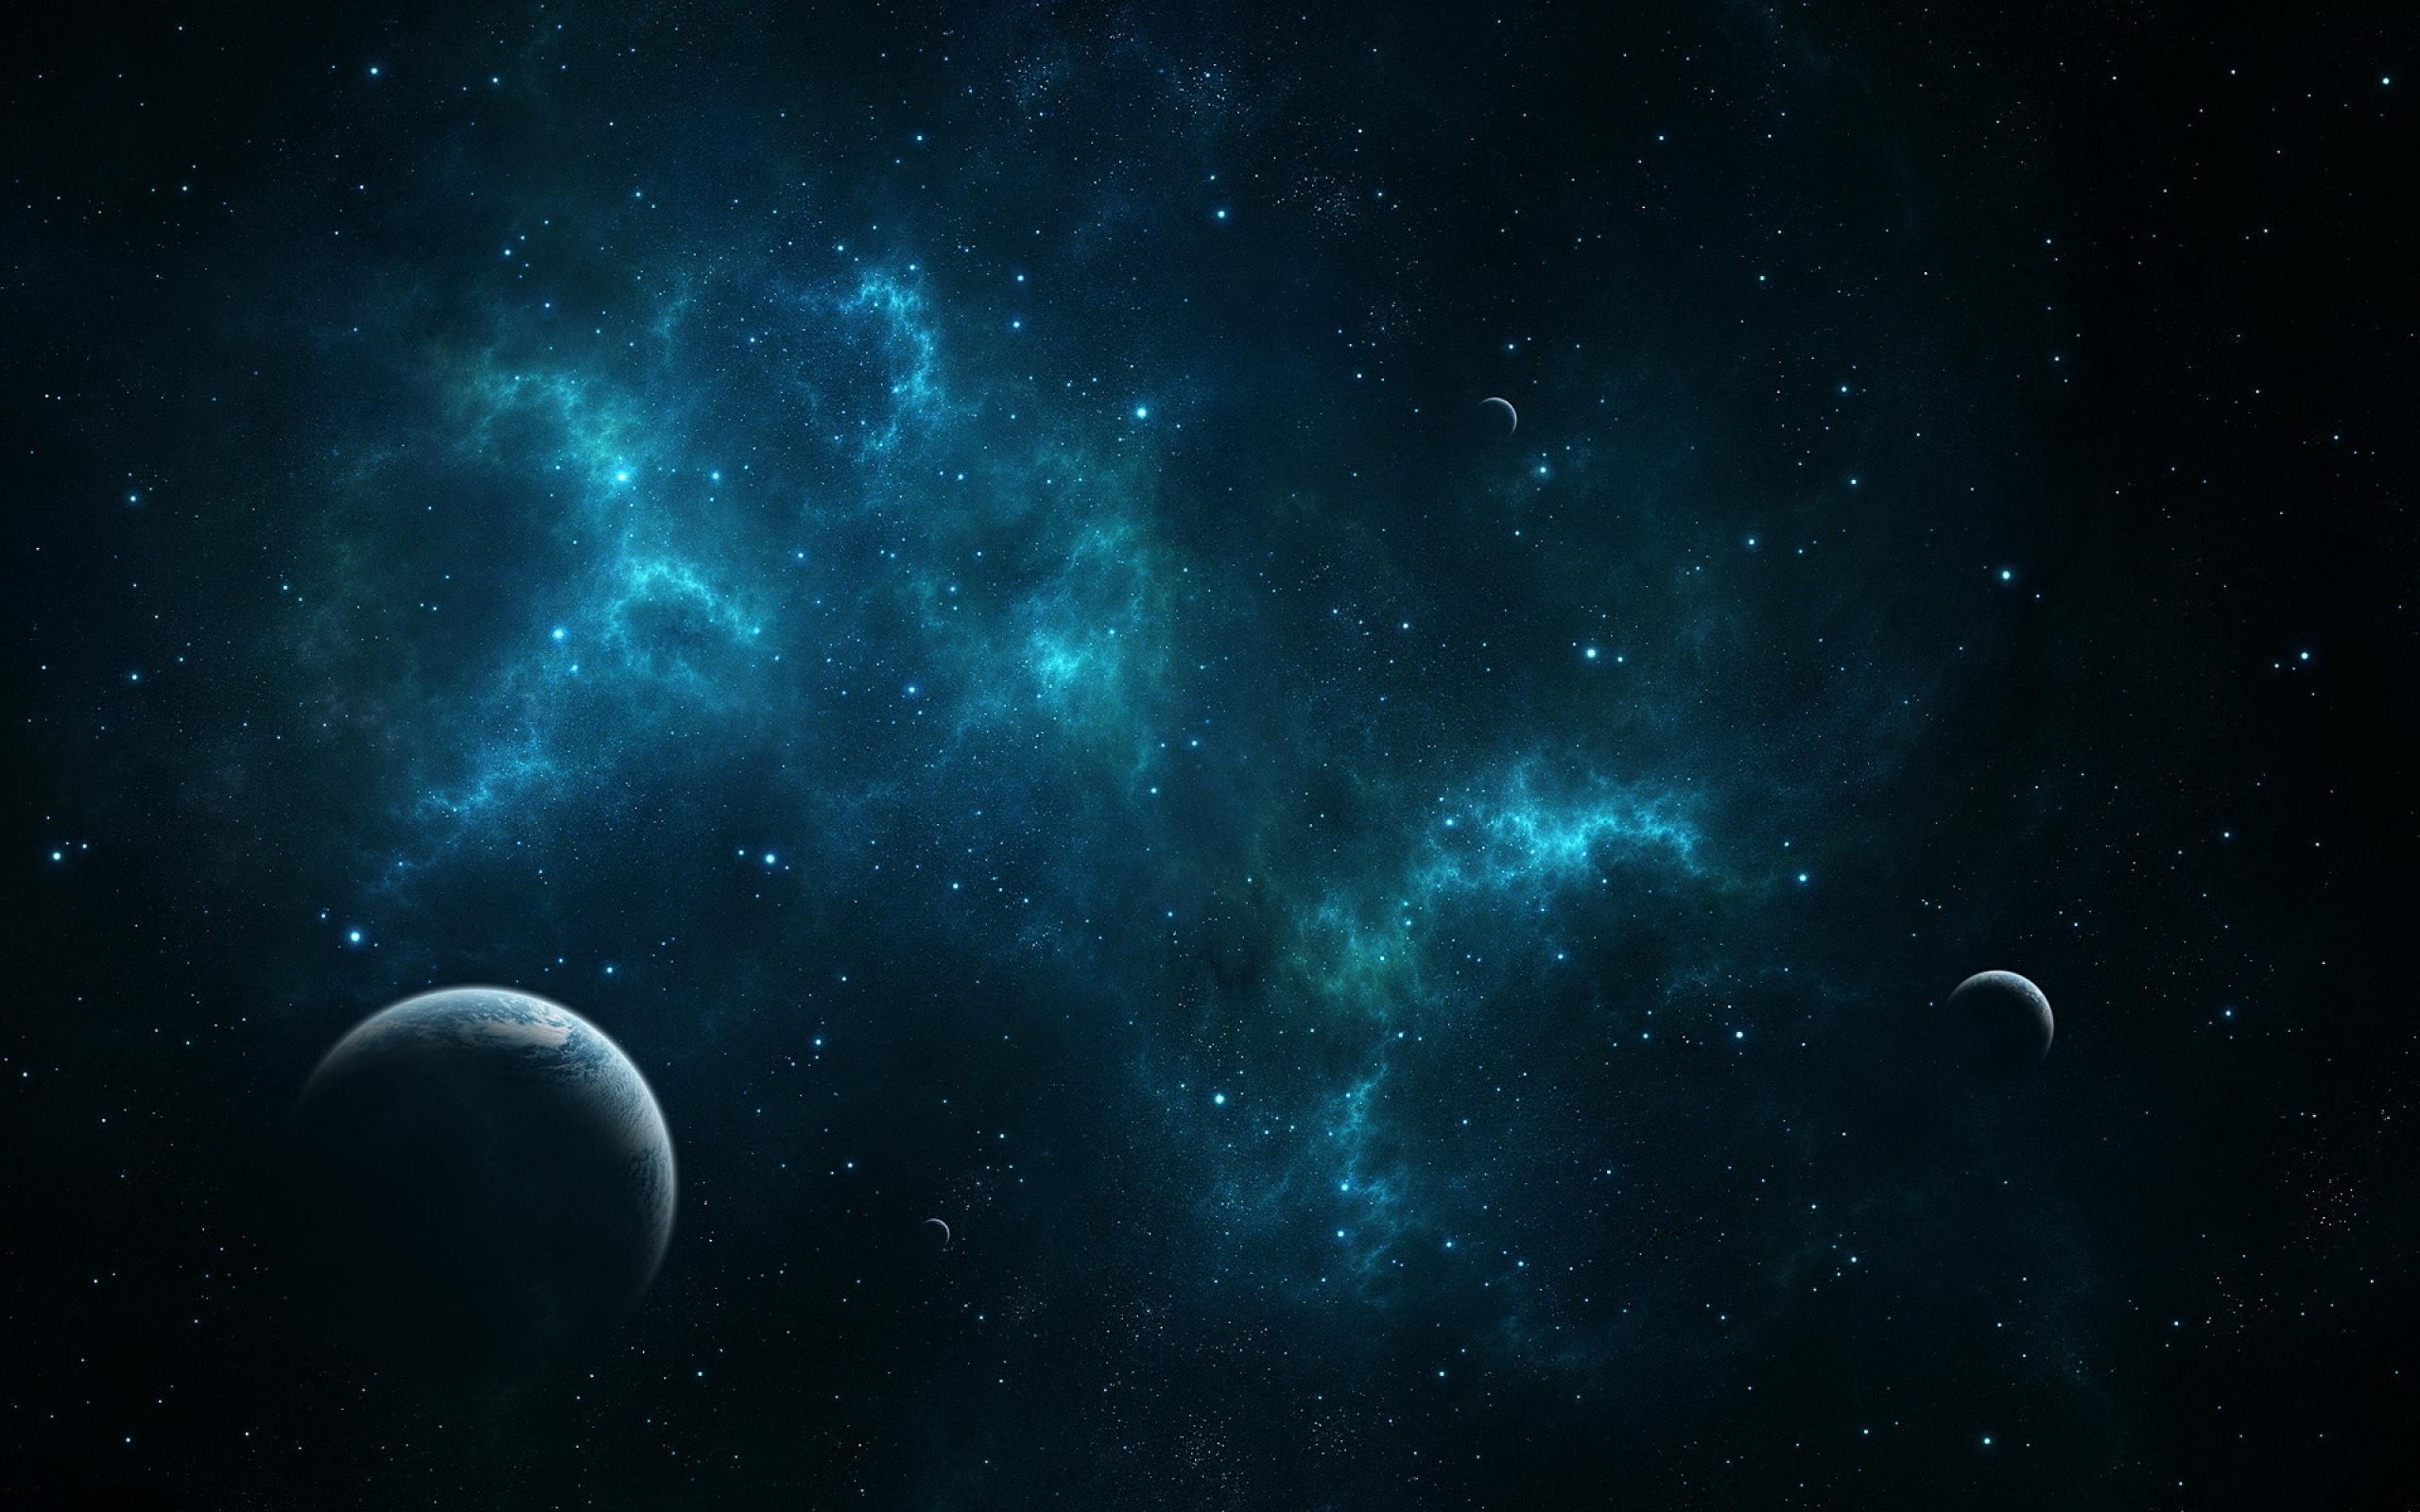 Android wallpaper - Blue Space